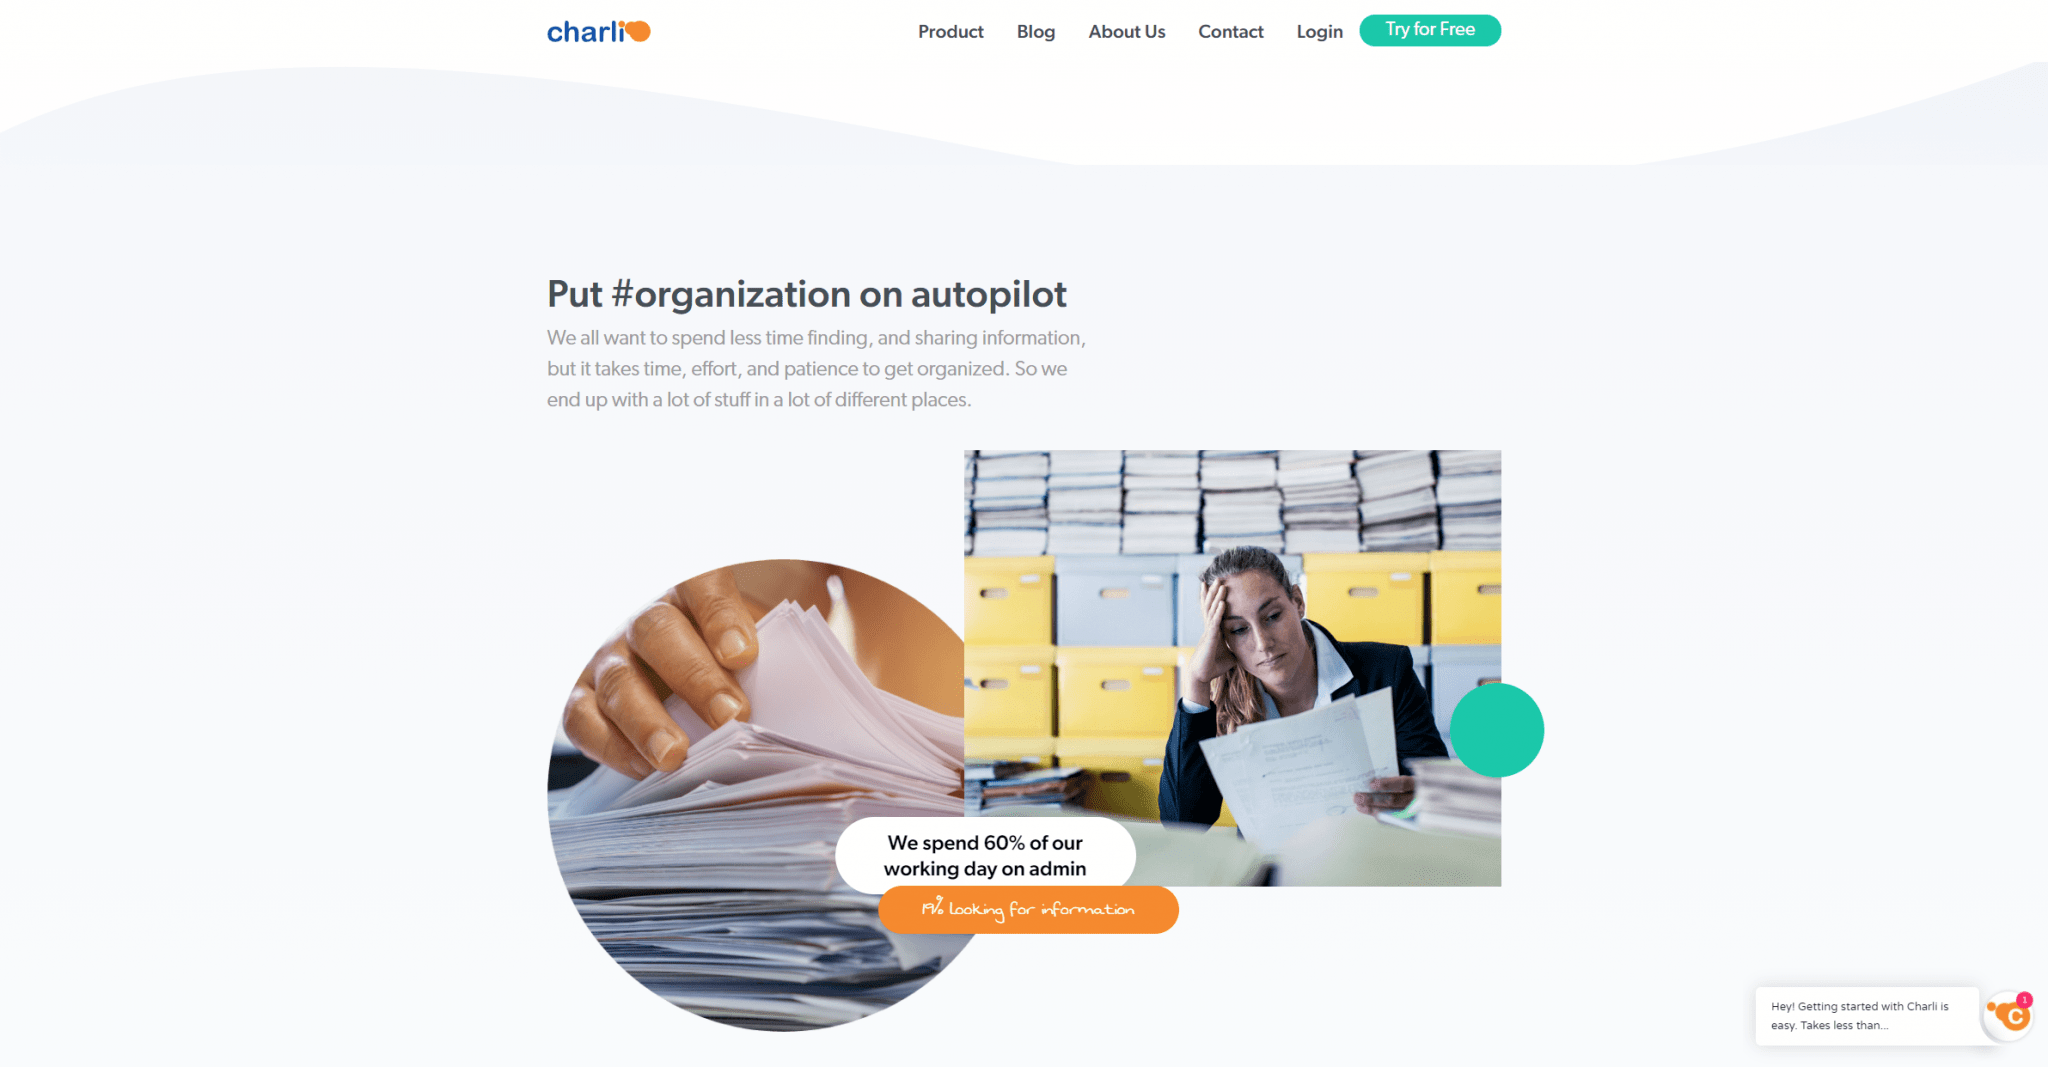 https___www.charli.ai_ Charli AI – Organize, find, and share content in one place_002